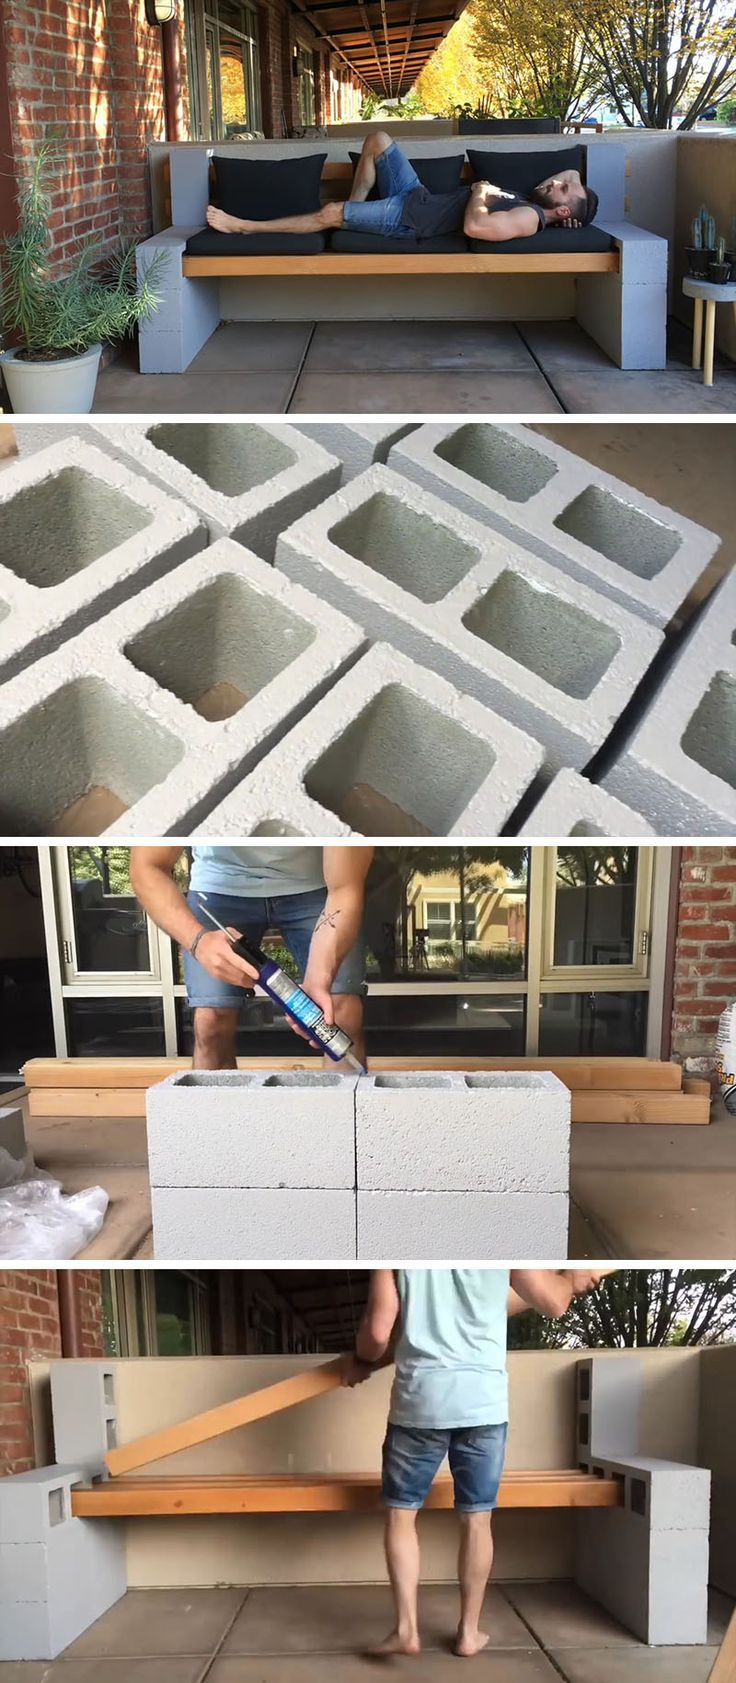 Diy patio furniture cinder blocks - Make Your Own Inexpensive Outdoor Furniture With This Diy Concrete Block Bench